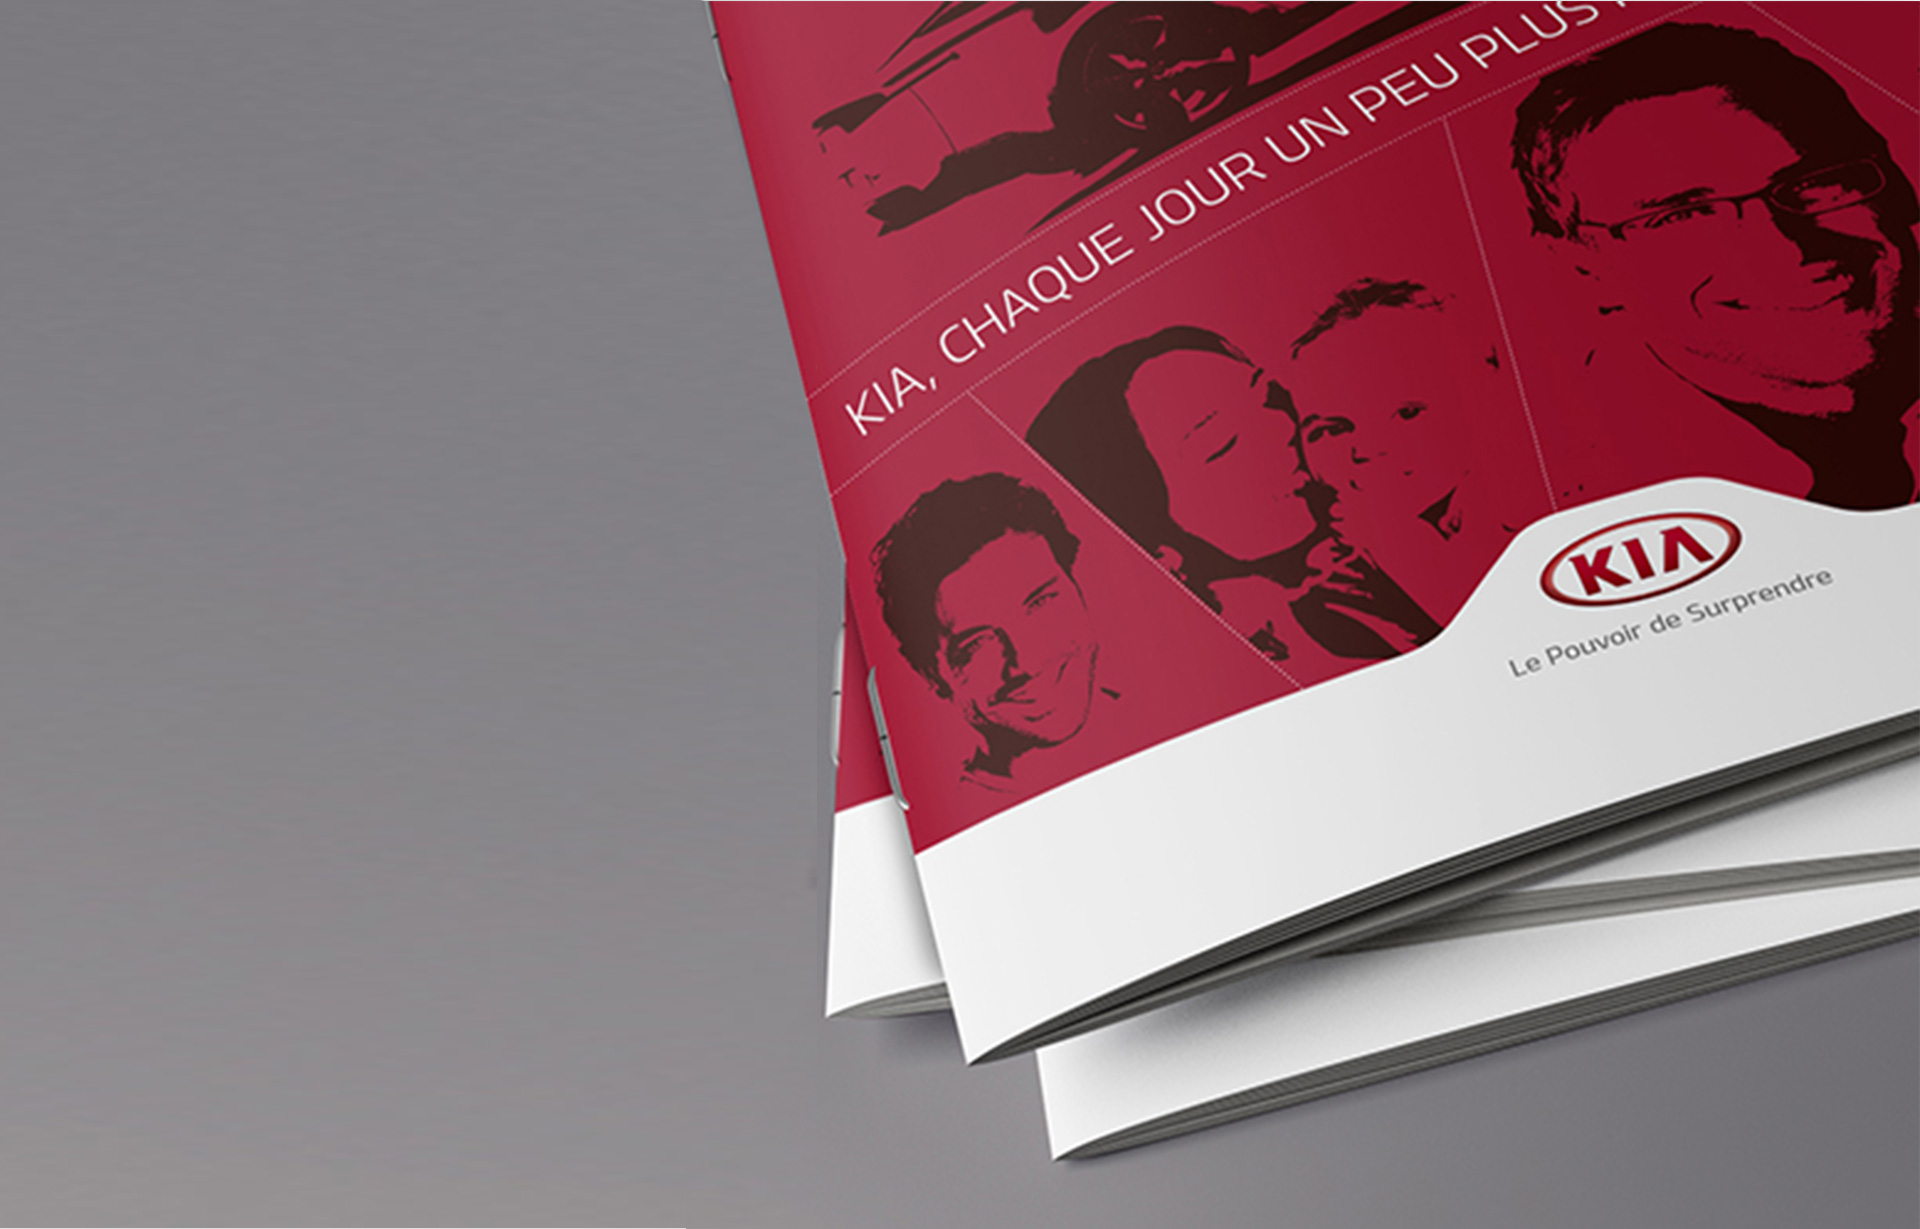 Georgeon-et-associes_agence-creation-edition-brochure-kia-welcomepack_01